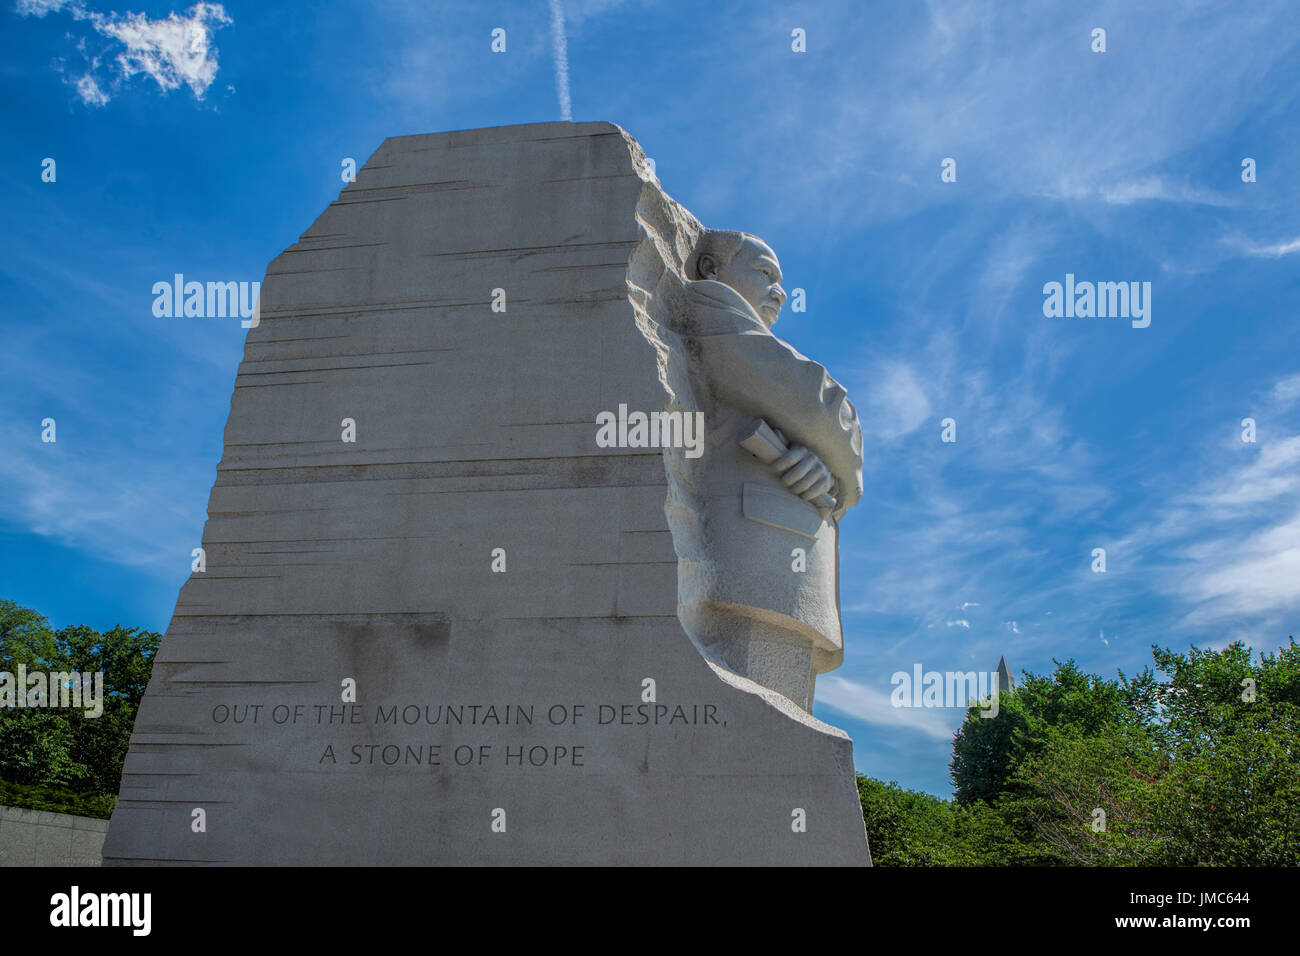 The emotional side view of the MLK jr. statue in Washington DC. - Stock Image